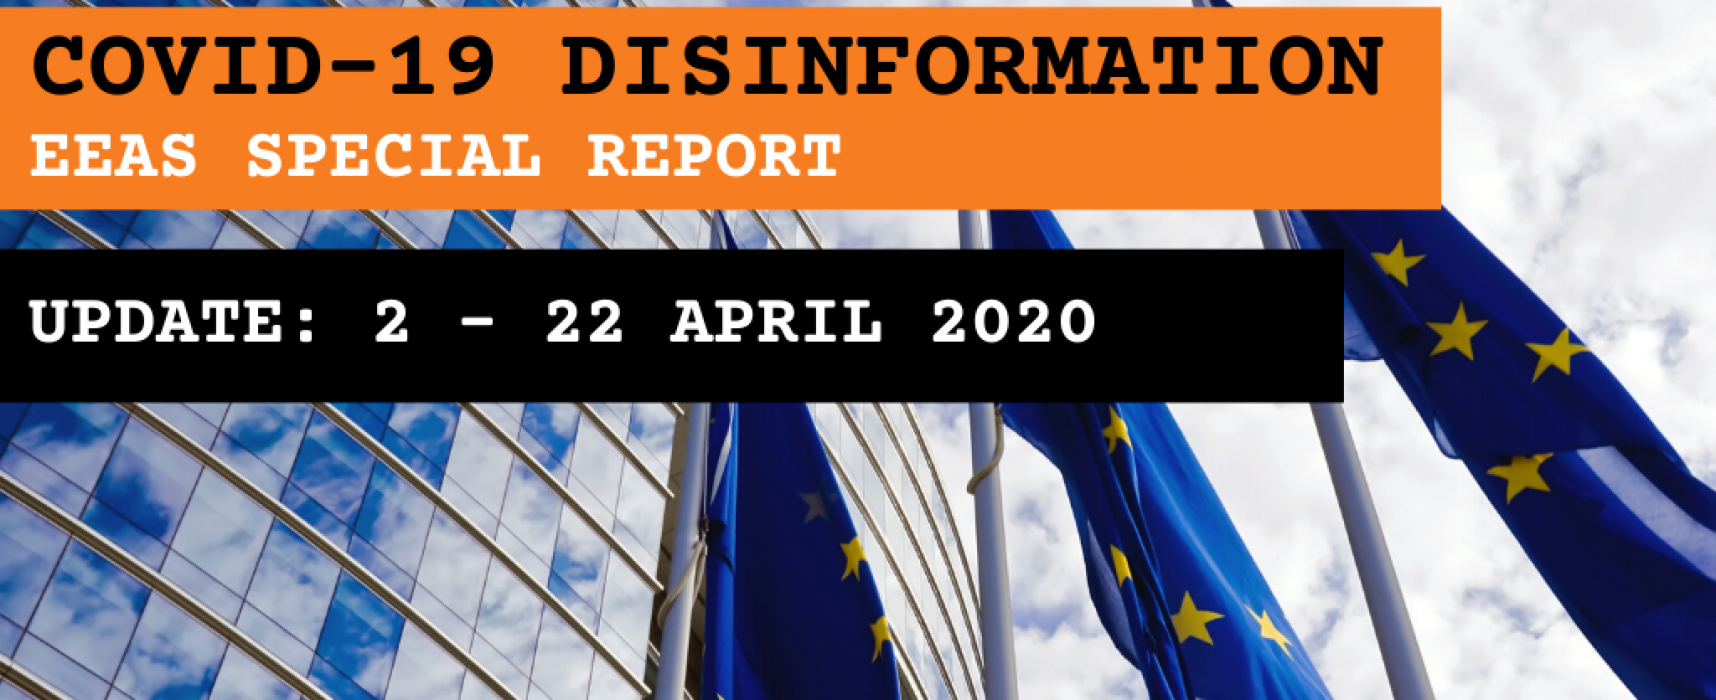 EEAS special report update: short assessment of narratives and disinformation around the COVID-19/Coronavirus pandemic (updated 2 – 22 April)